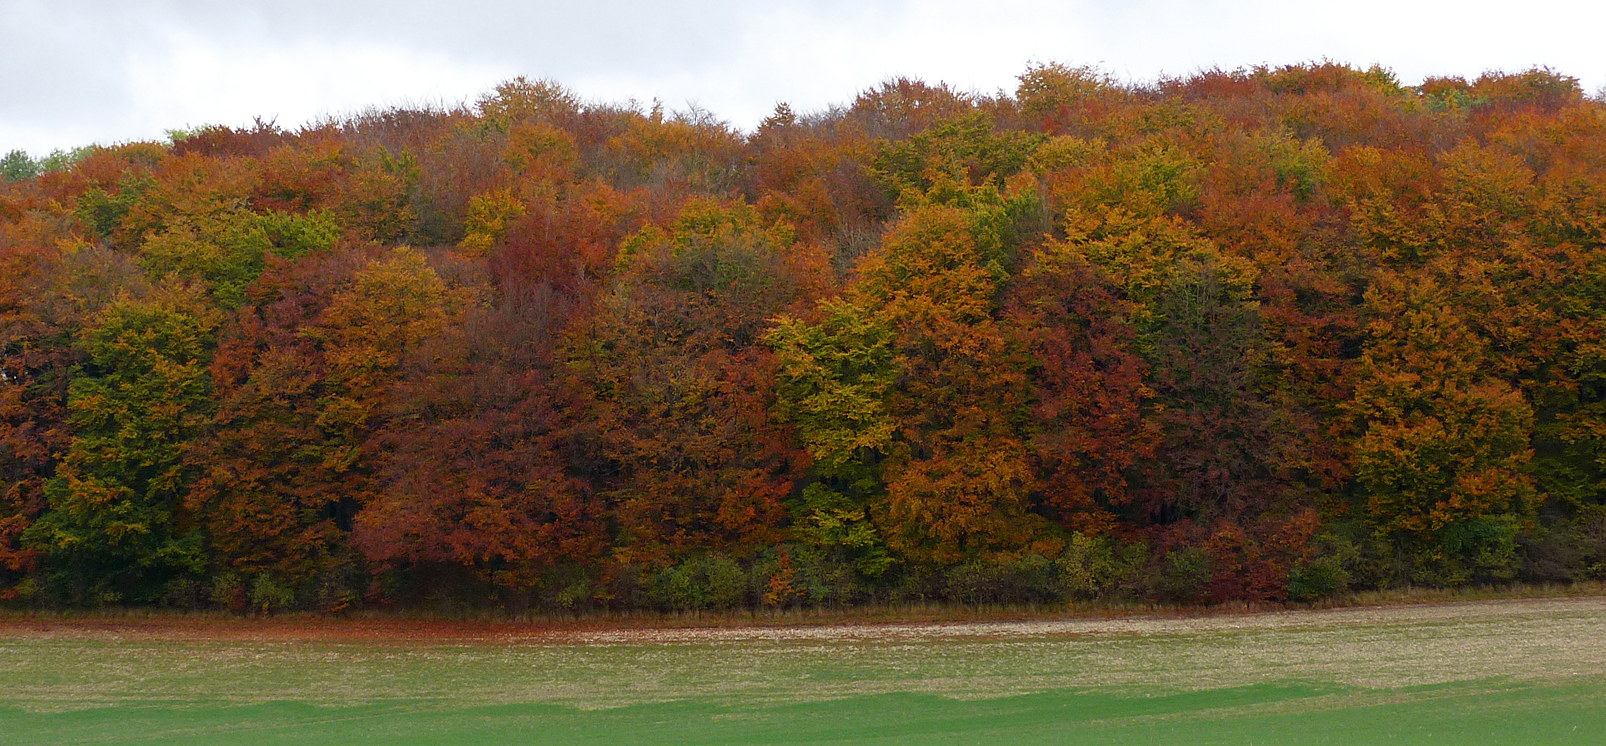 Autumn on the Wolds